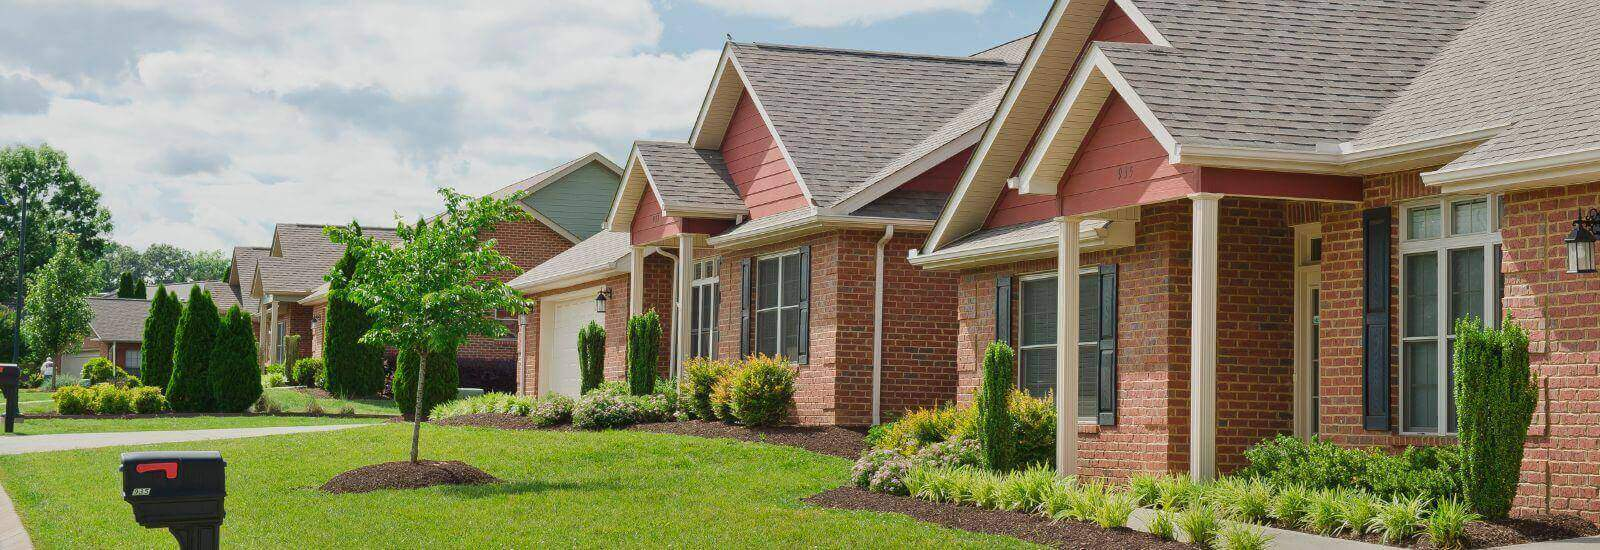 Cottage Homes at Asbury Place Maryville